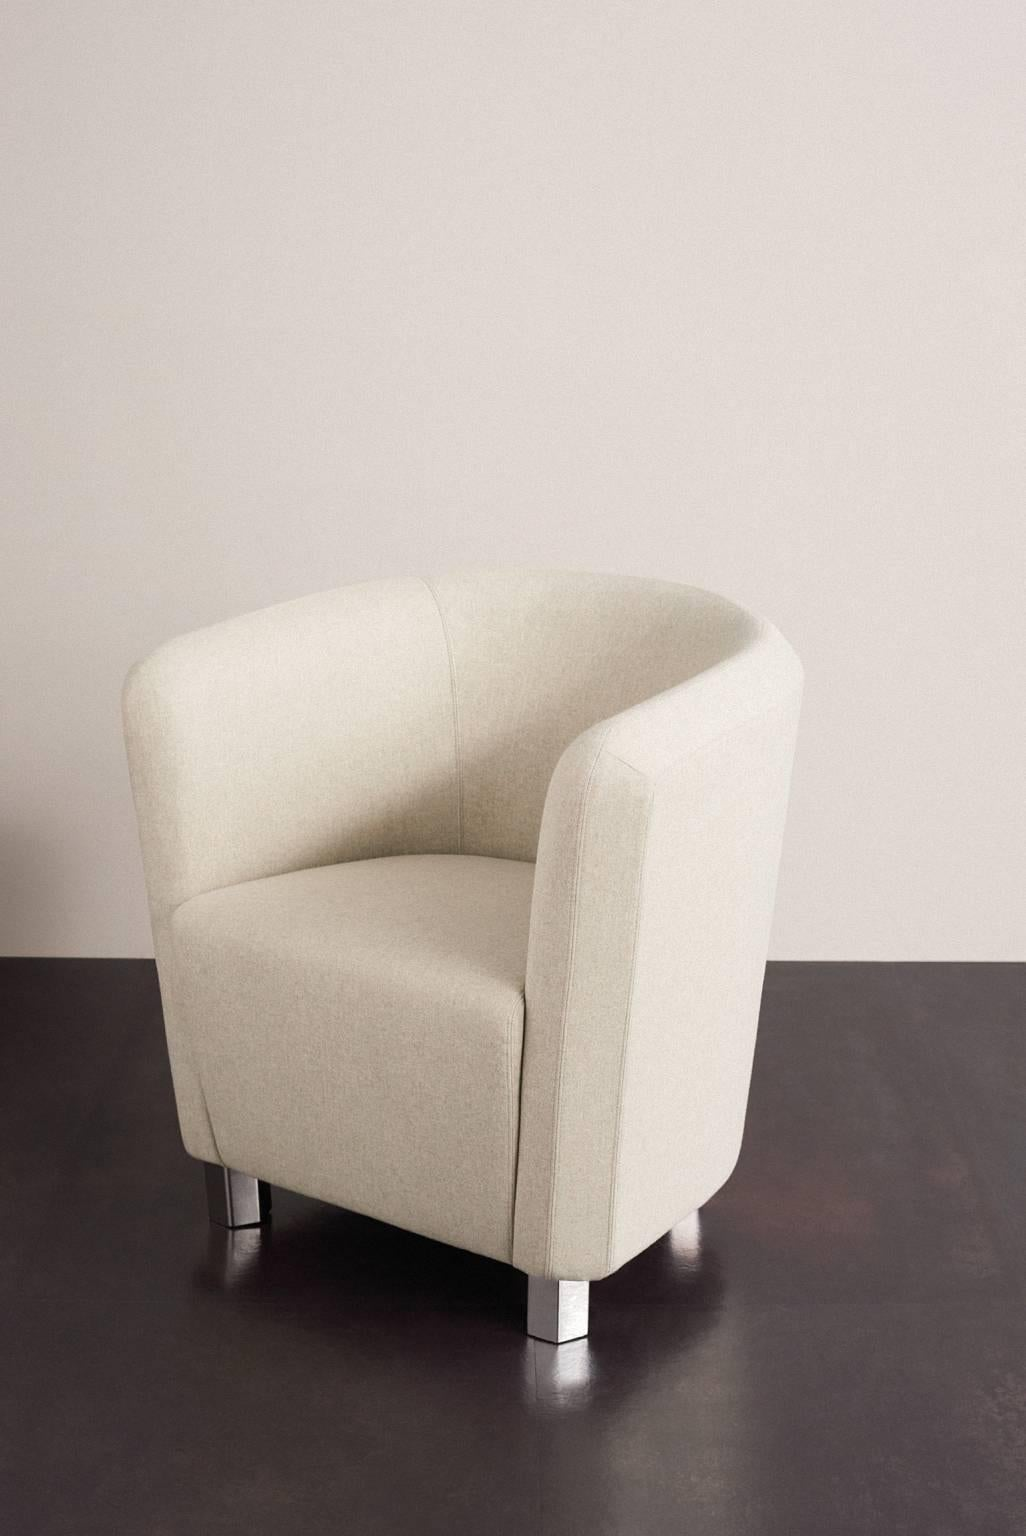 small arm chair cane repair deco futura armchair with steel frame and fiber by moroso for diesel sale at 1stdibs